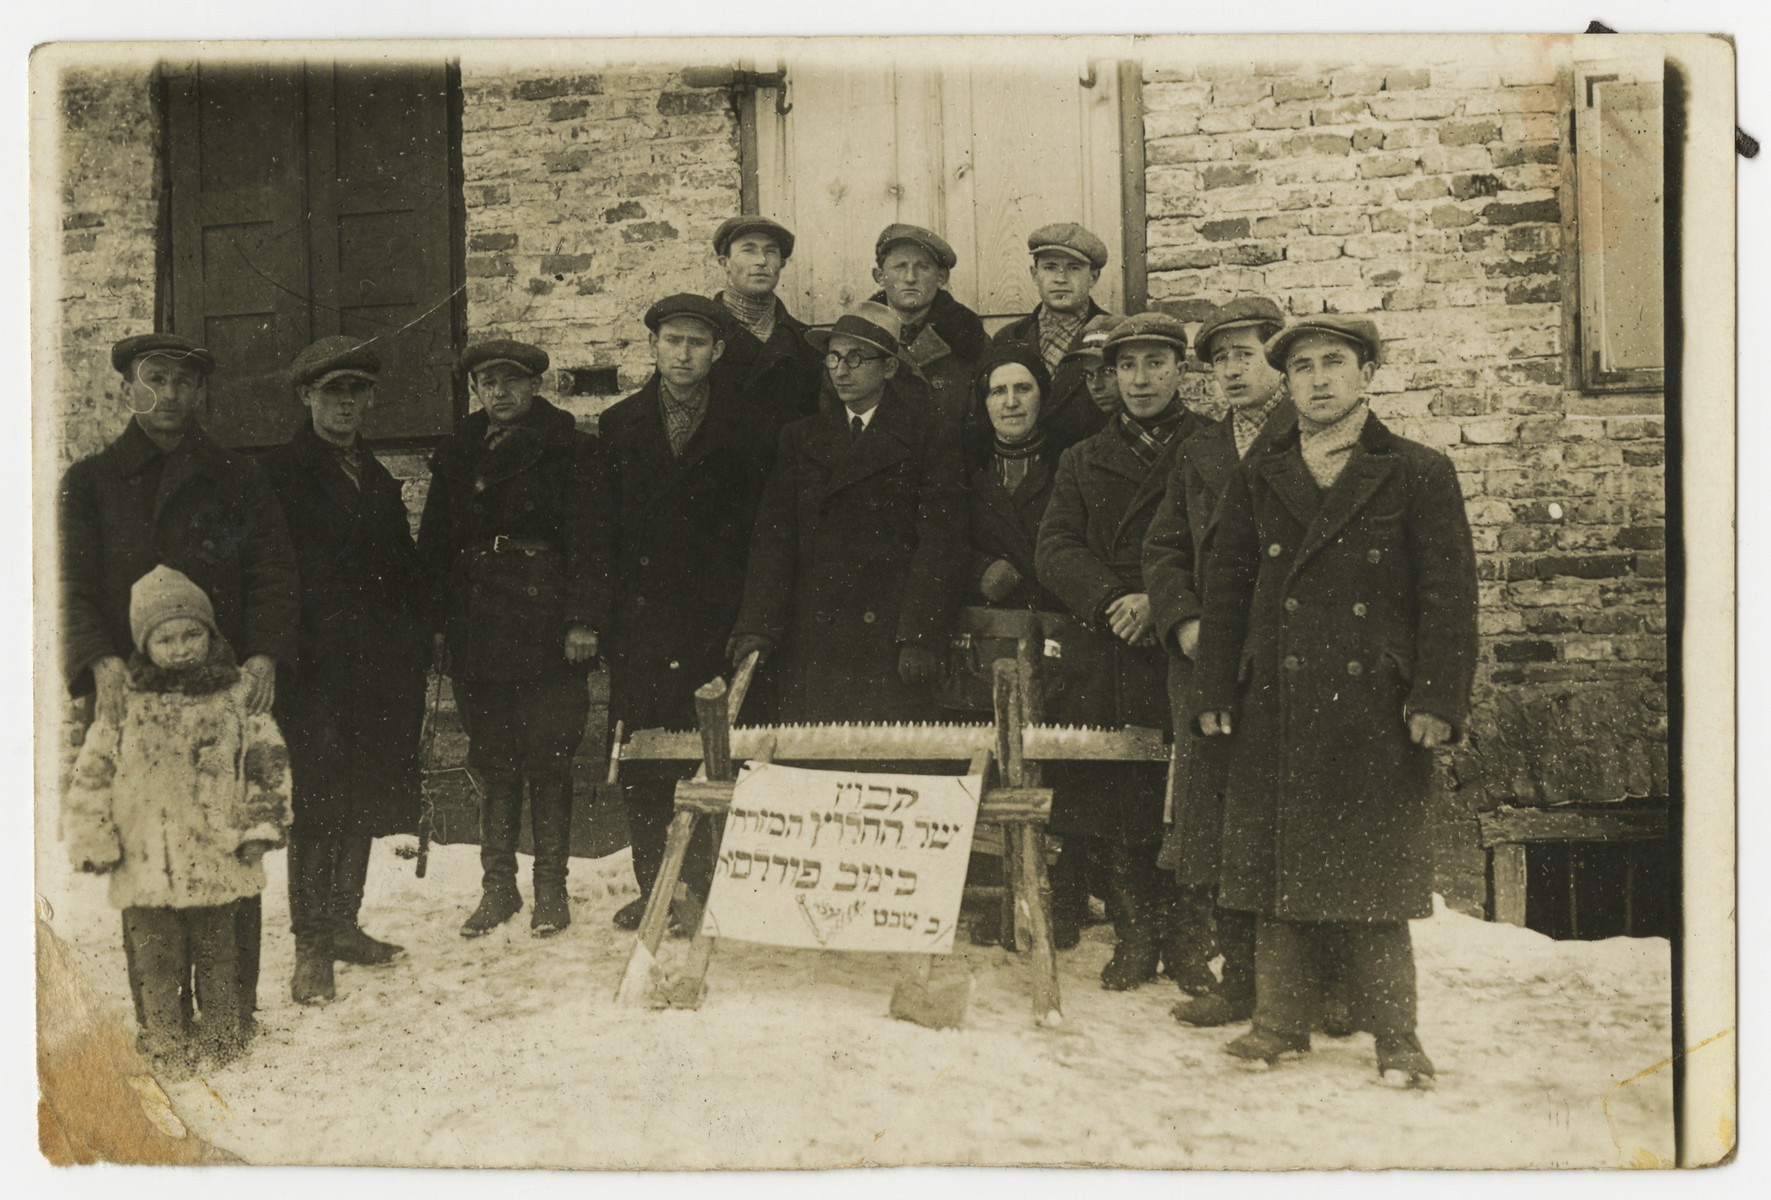 Asher Fetherhar (later Zidon) poses with members of the Hechalutz Mizrachi hachshara in Janow Podlaski.